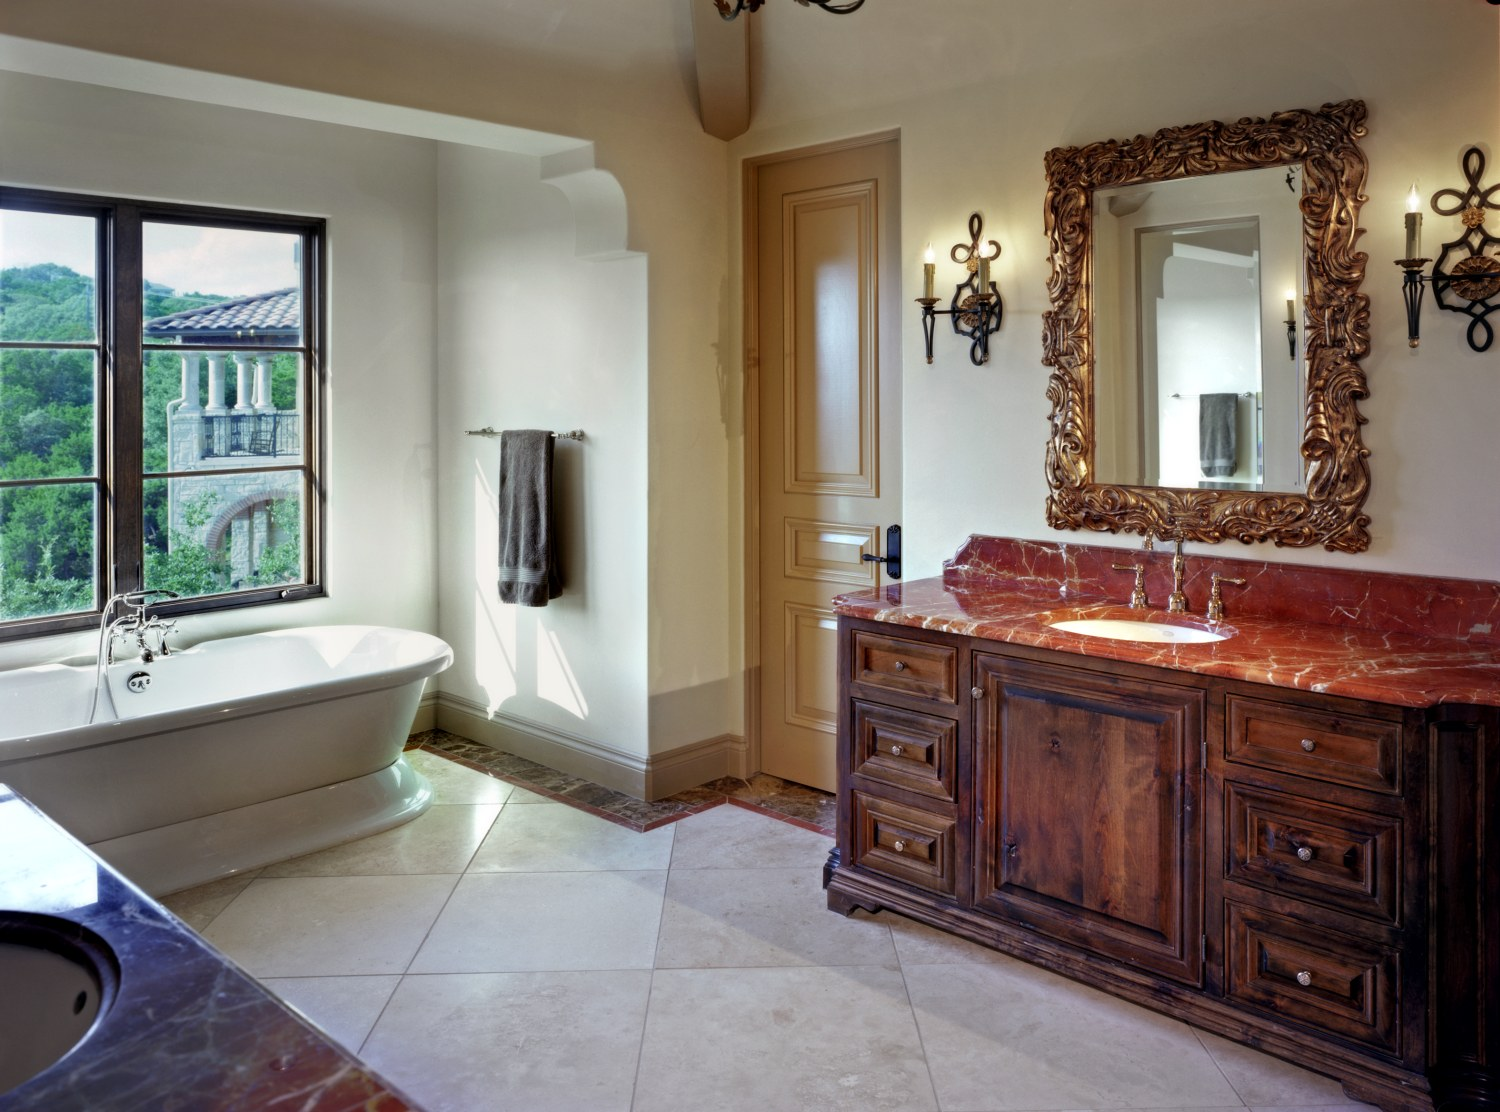 Architecture-Home-Coldwater-Canyon-04-bathroom.jpg